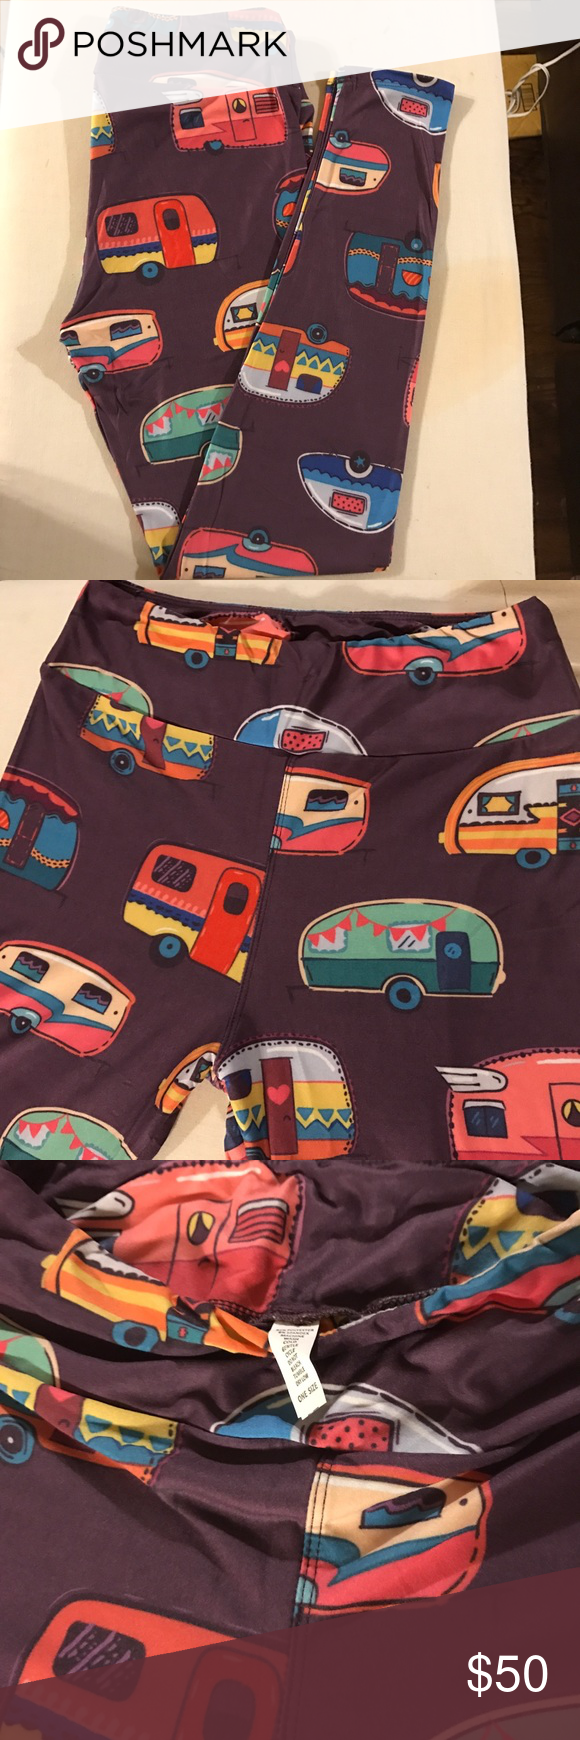 Camping camper leggings ✳A must have print for all avid campers to wear while camping. perfectly awesome, soft with comfortable yoga waistband  ✅Material : 92% polyester + 8% spandex, soft milk blend  ✅Size: OS ✅Condition : Brand new in package. No tags attached! ✅Waist band: wide Yoga waist band (see 2nd pic) with elastic at the top  *Please check pictures and ask question. No returns pls :) pls re-list if not happy!  ⛔️not Lularoe camping legging Pants Leggings